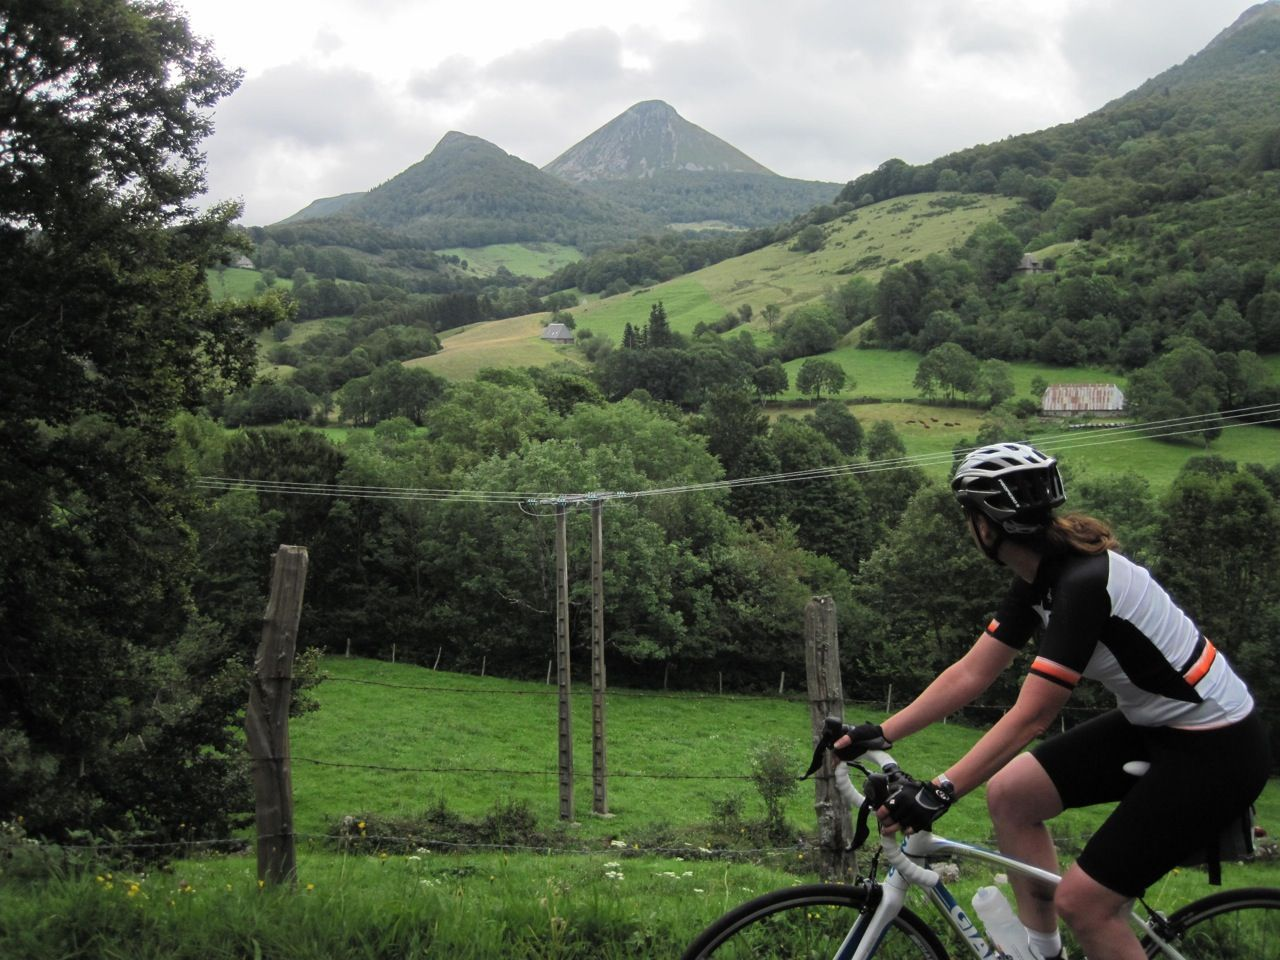 _Staff.348.18306.jpg - France - Haute Dordogne - Guided Road Cycling Holiday - Road Cycling